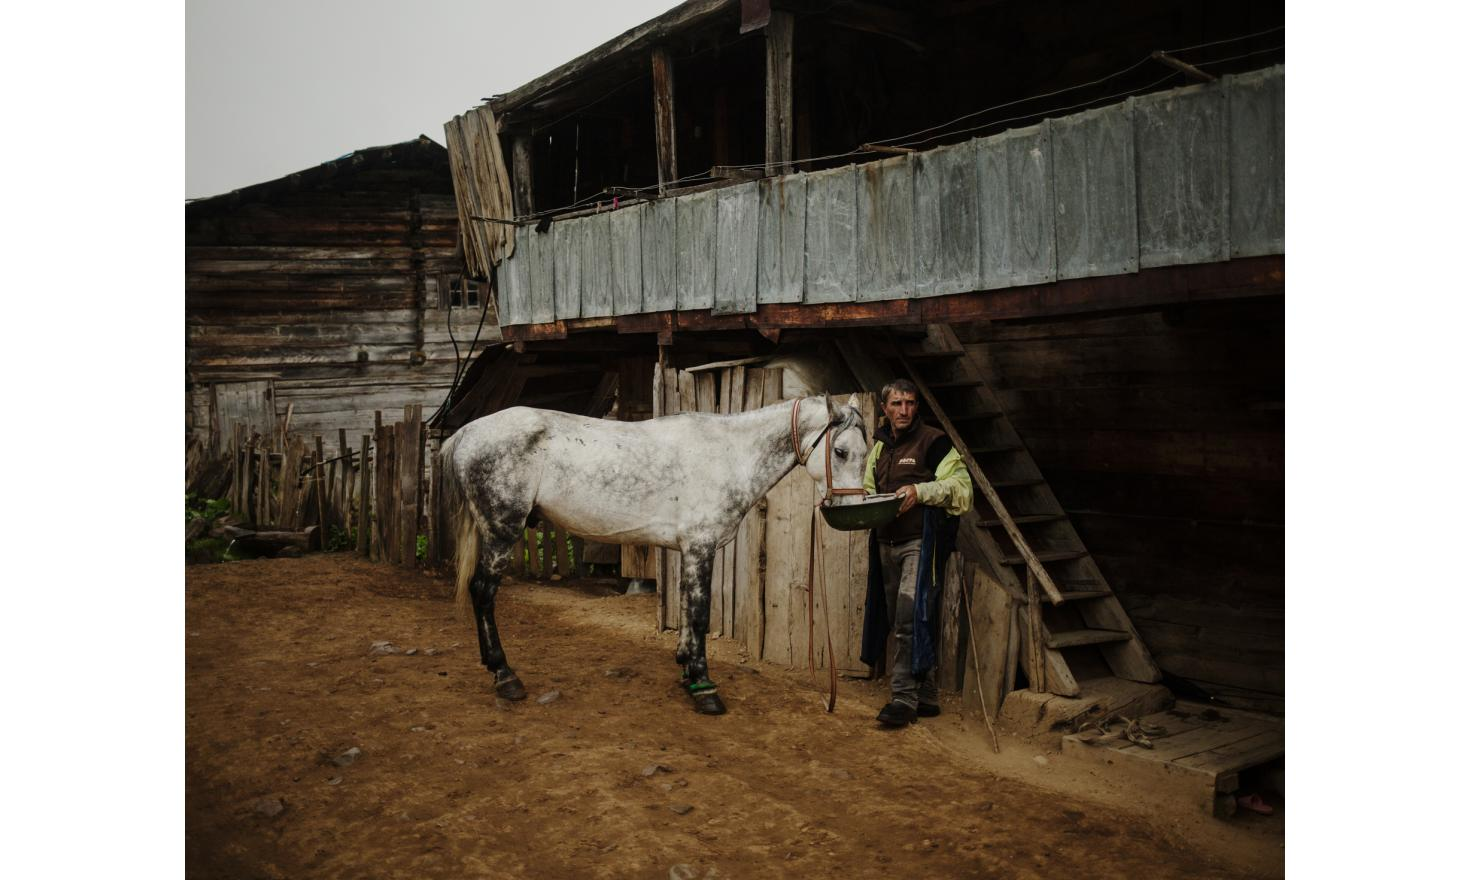 Zortikheli. A man feeds his horse. Horses are mainly used by men to accompany cattles in the pasture.